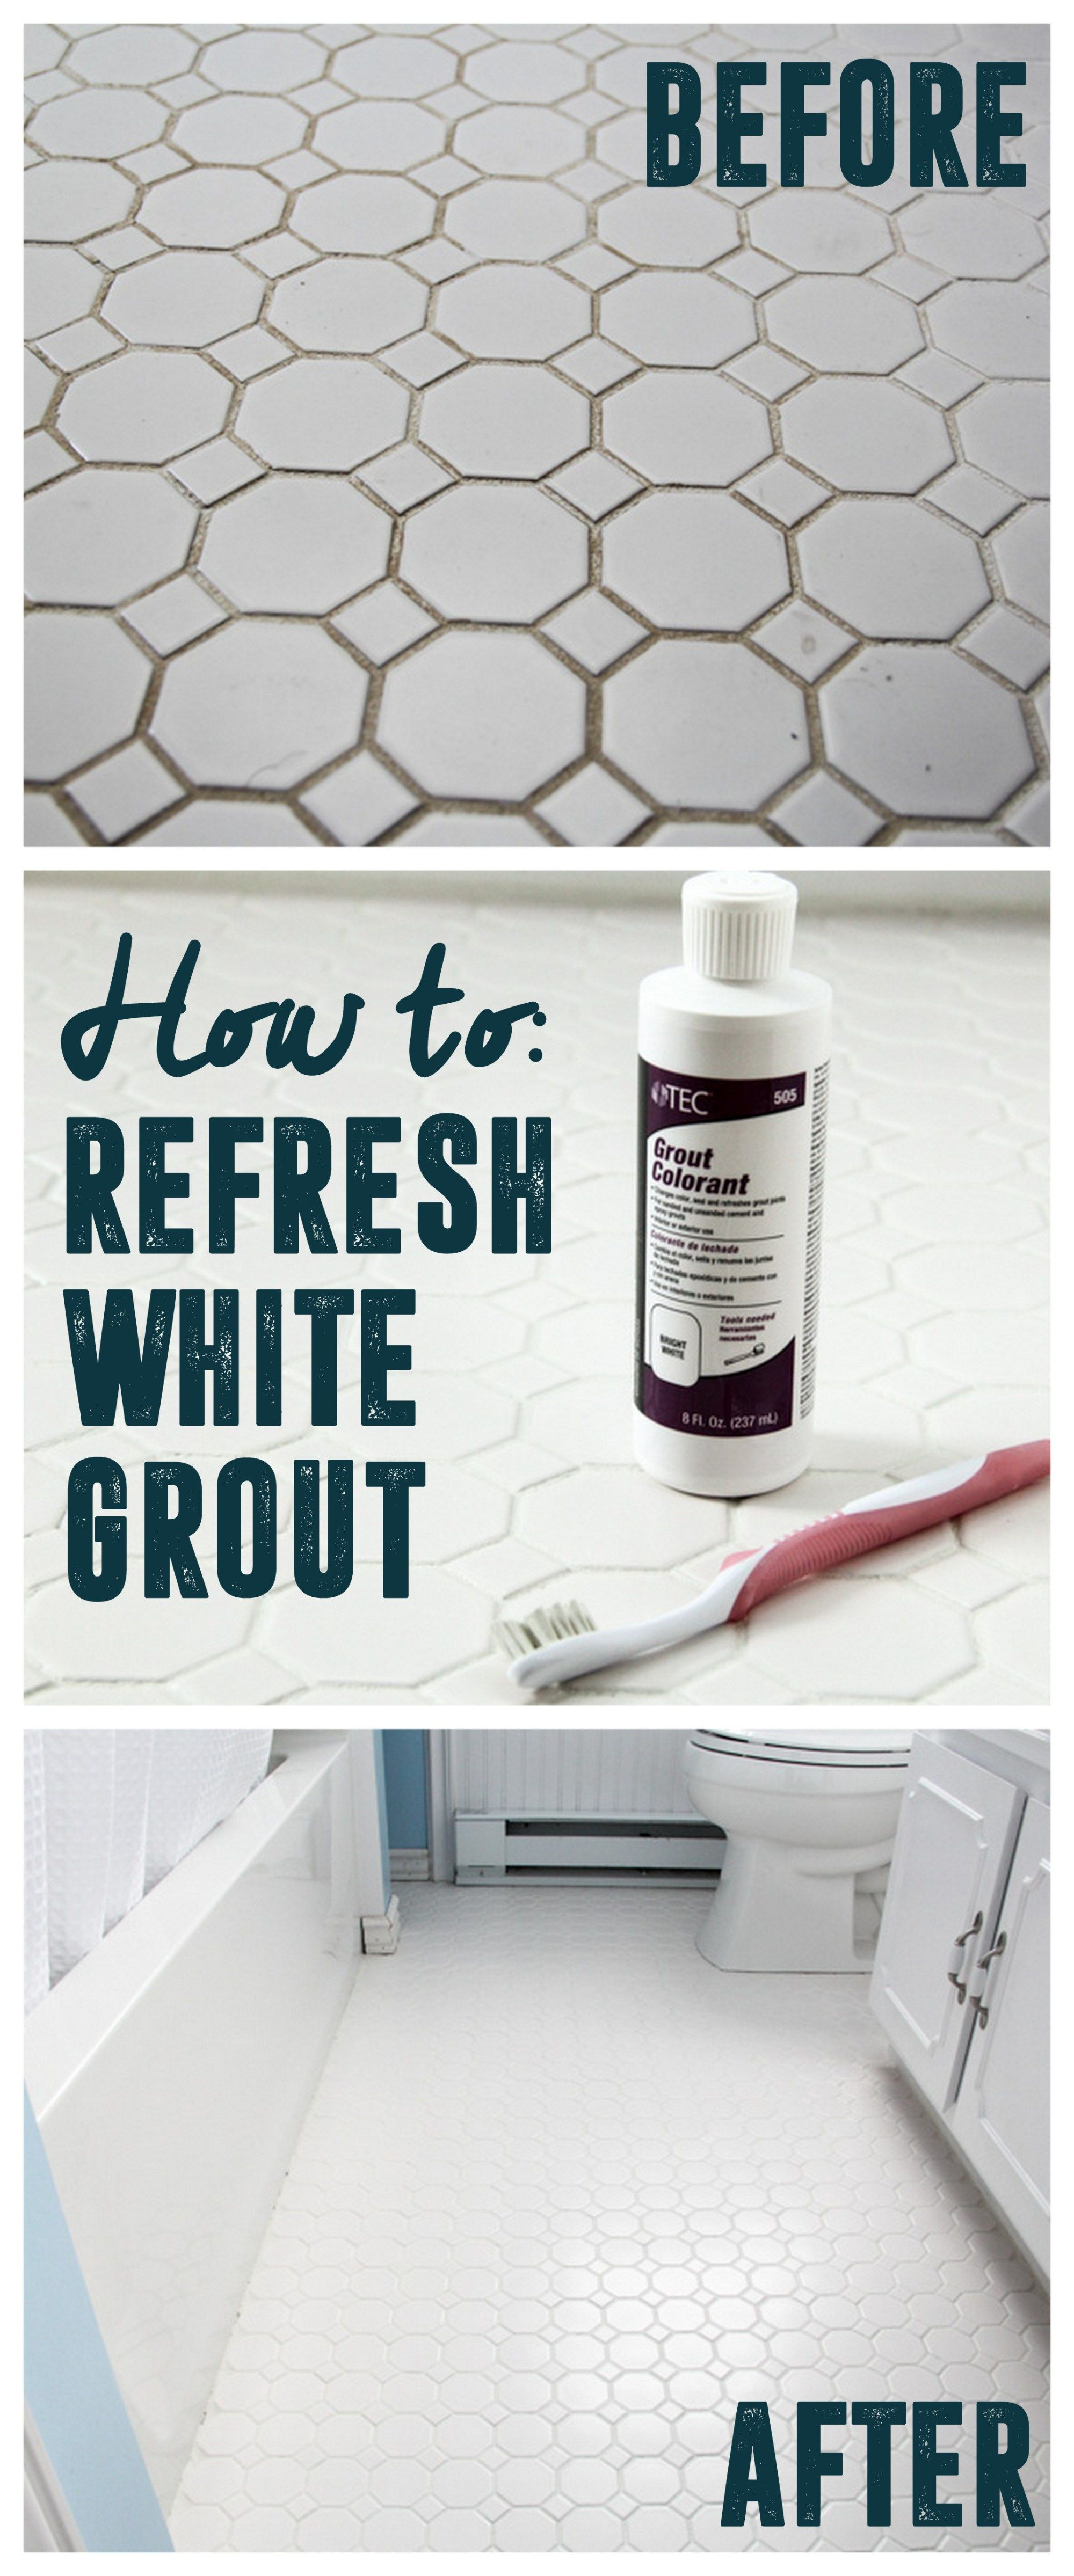 How to Refresh White Grout on Tile Floors, Clean White Grout ...